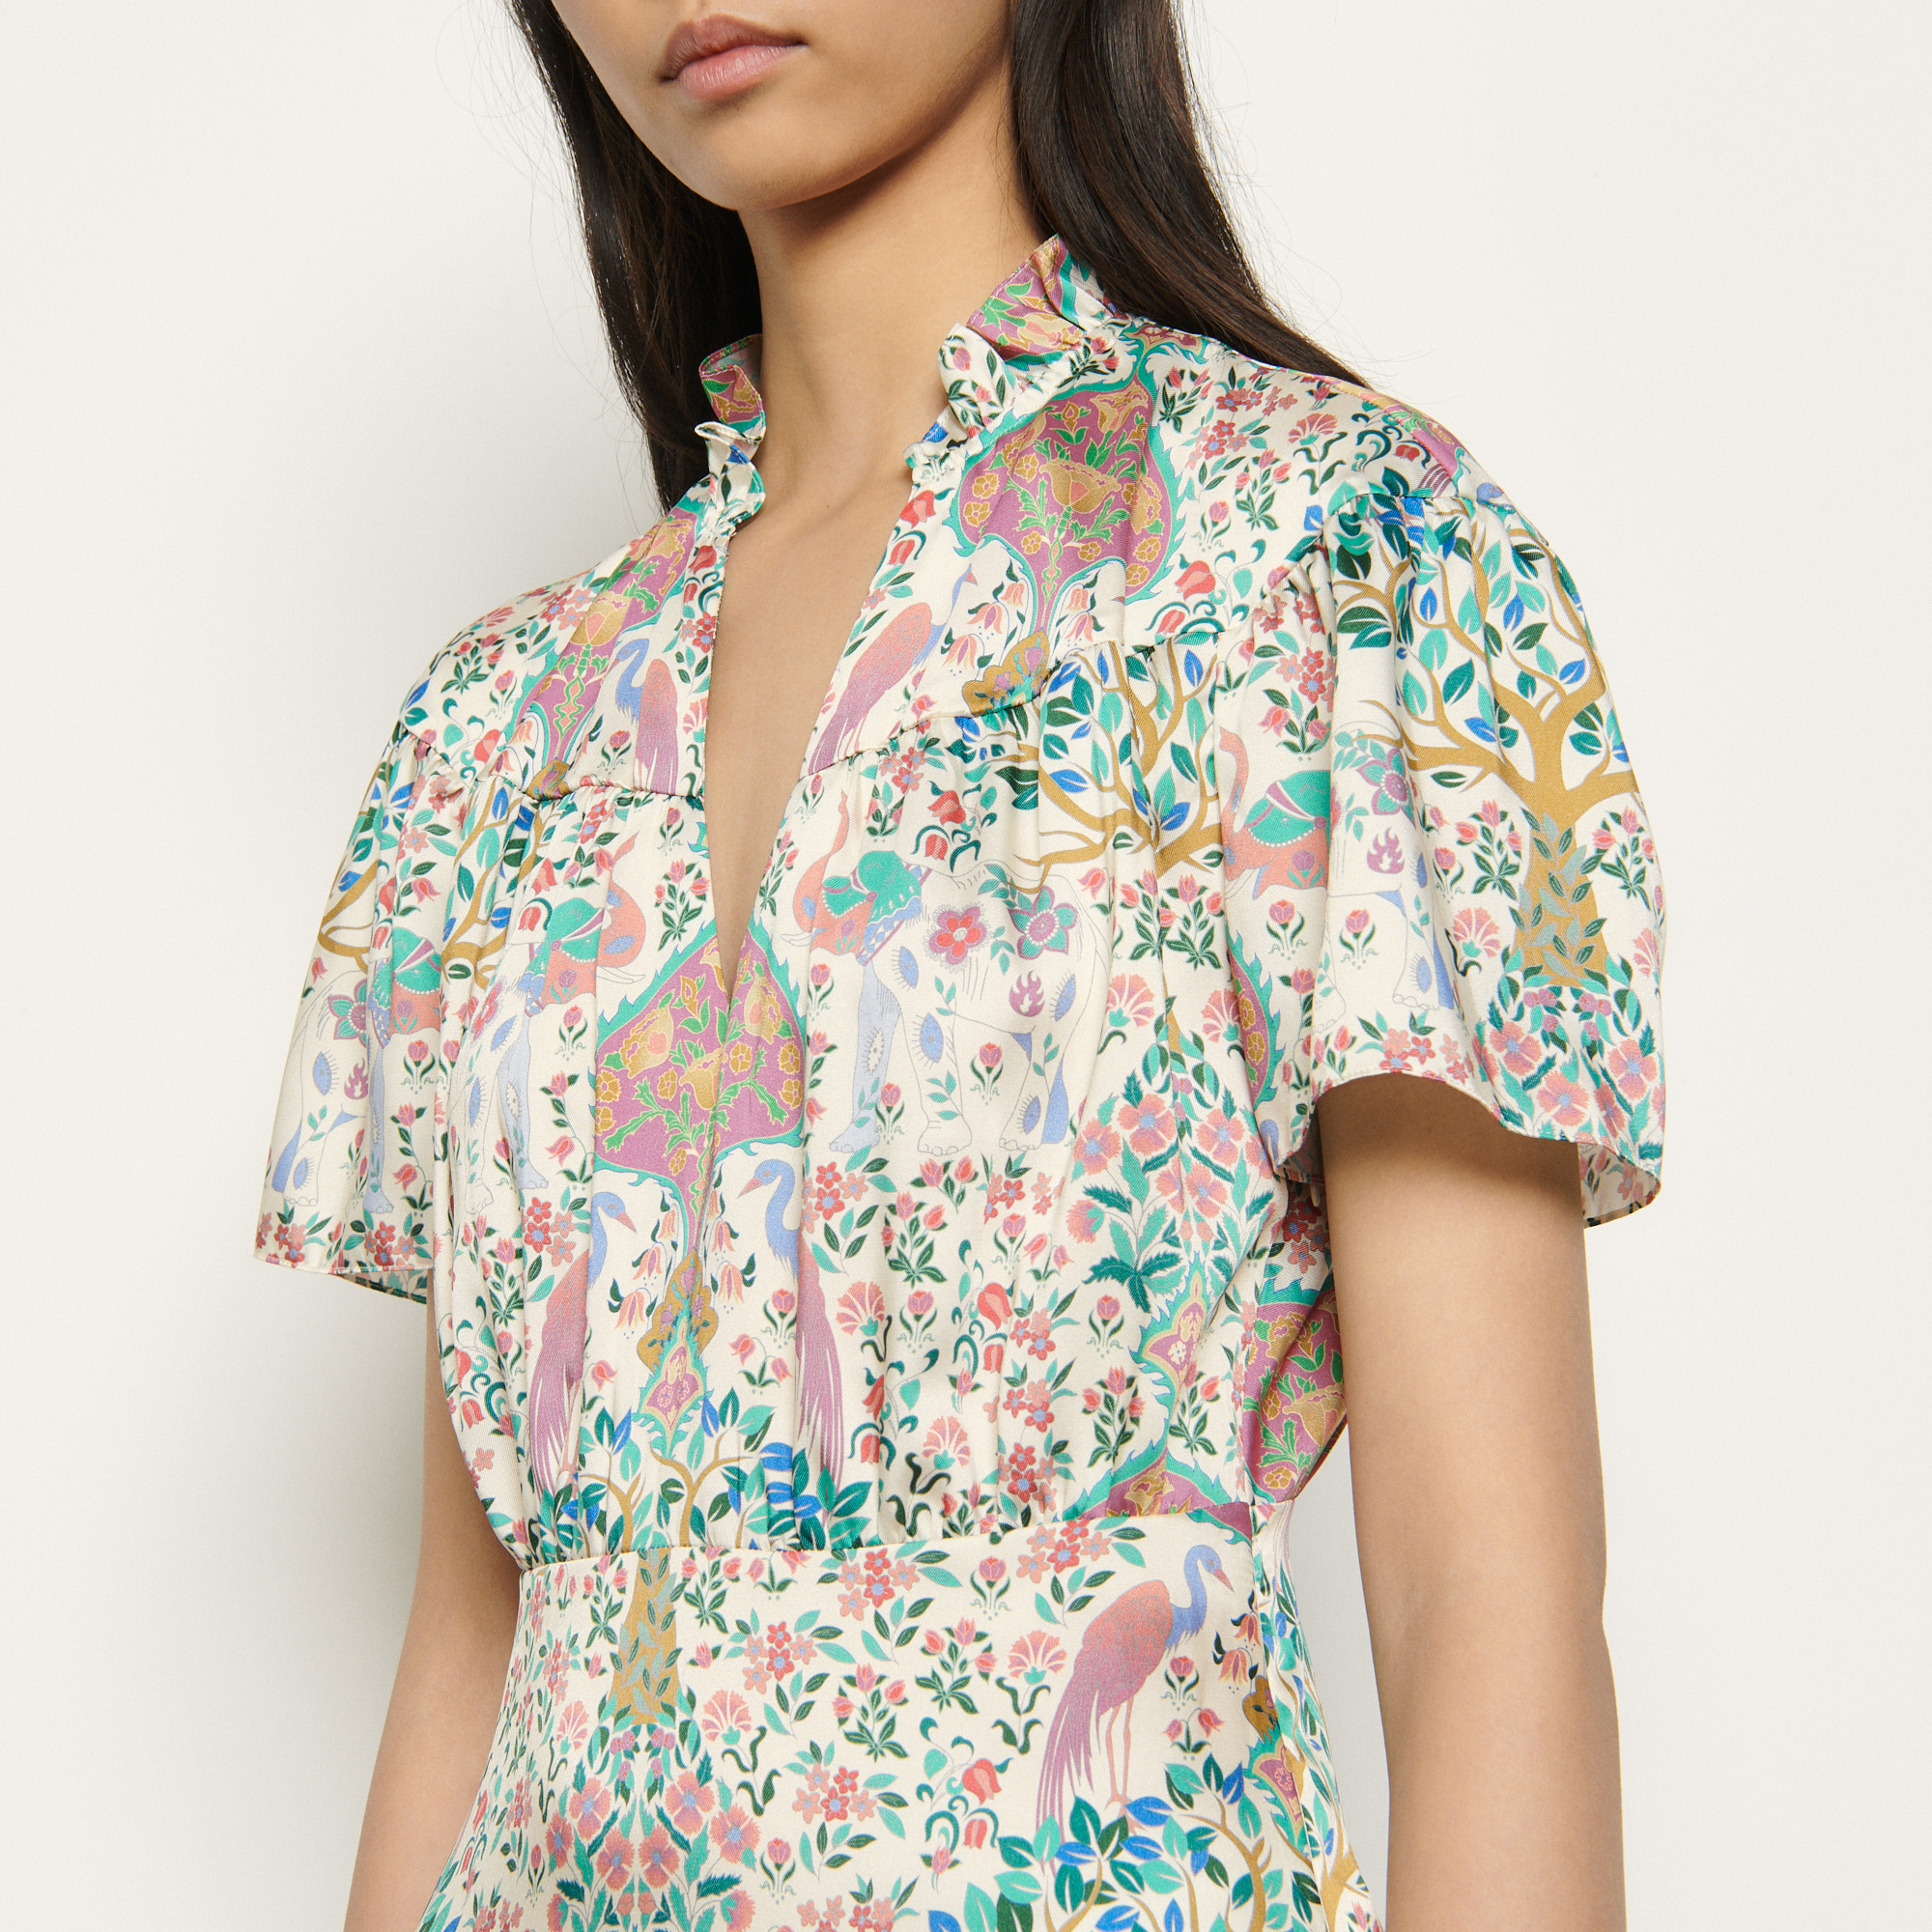 Short printed dress with ruffles and short sleeves - Ecru